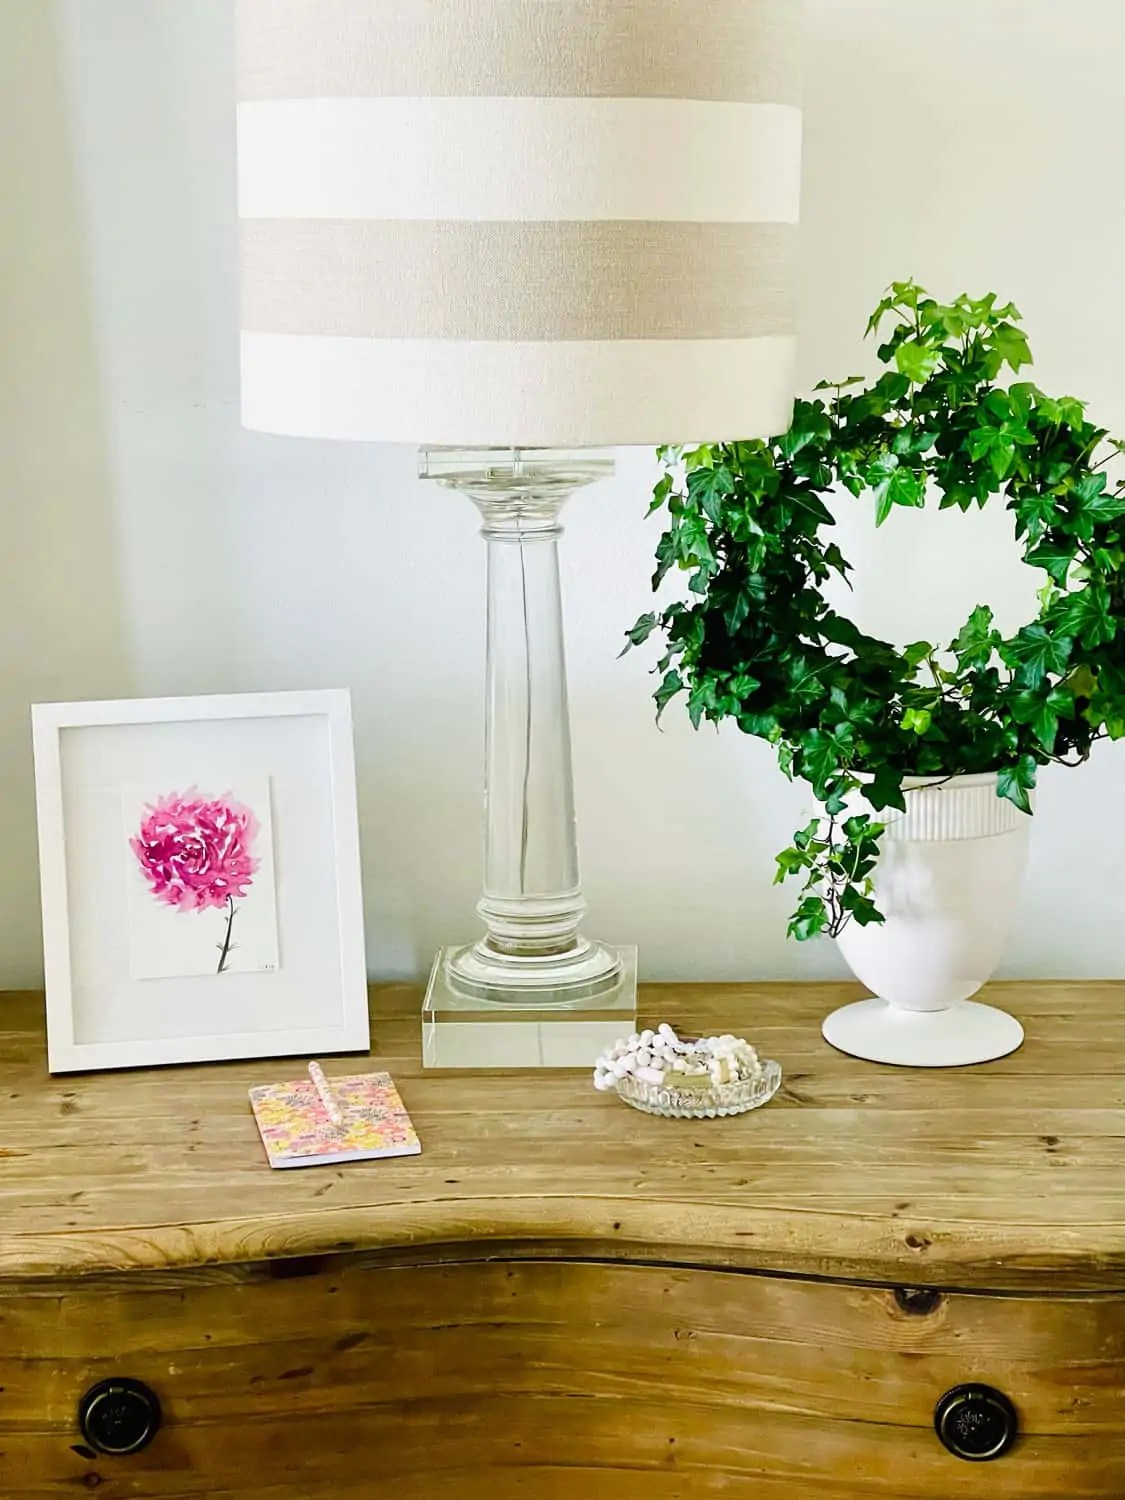 Bedside table styling by Mary Ann Pickett